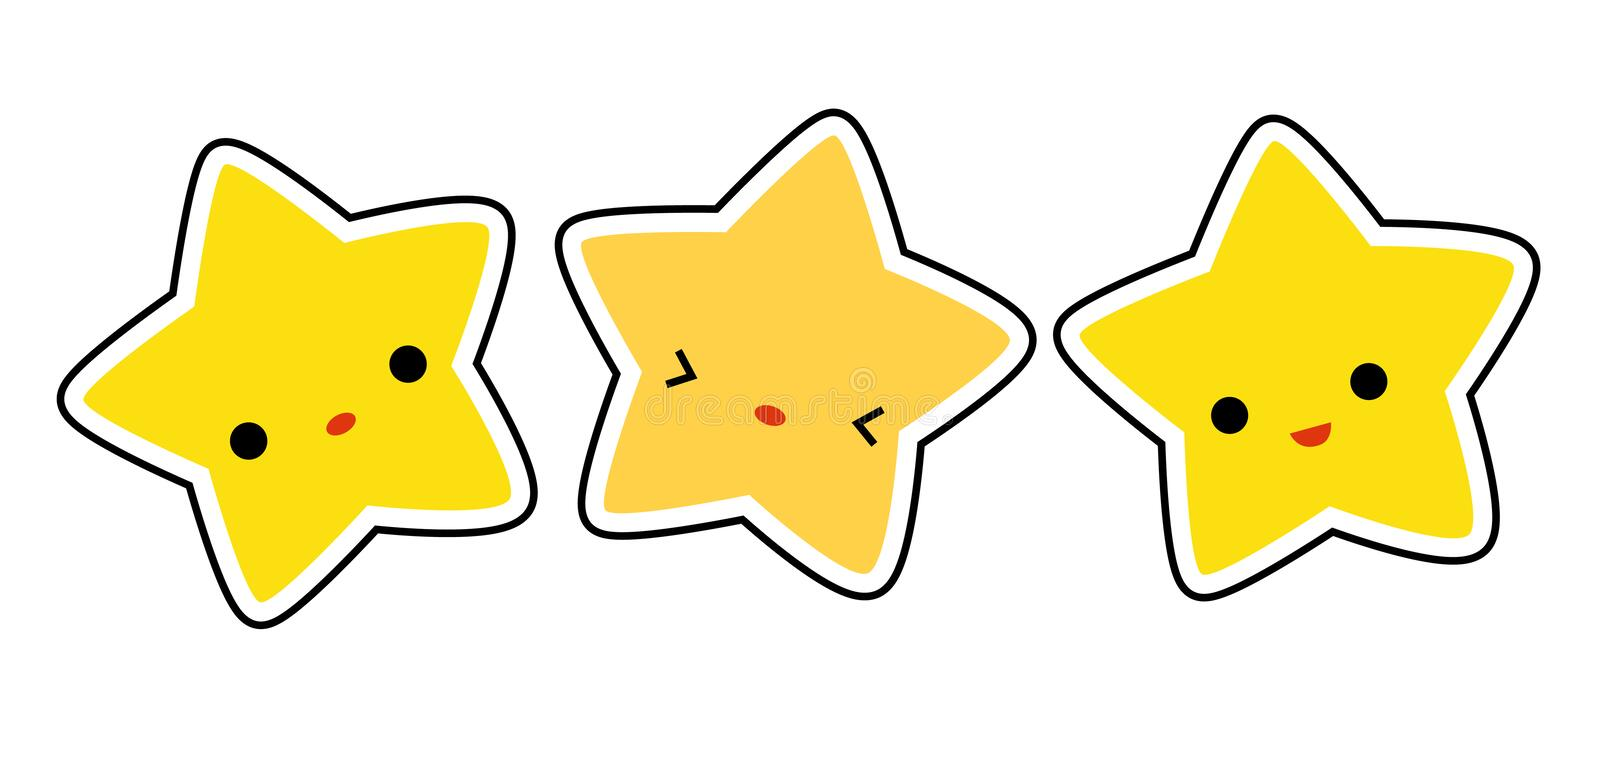 Star / stars royalty free illustration